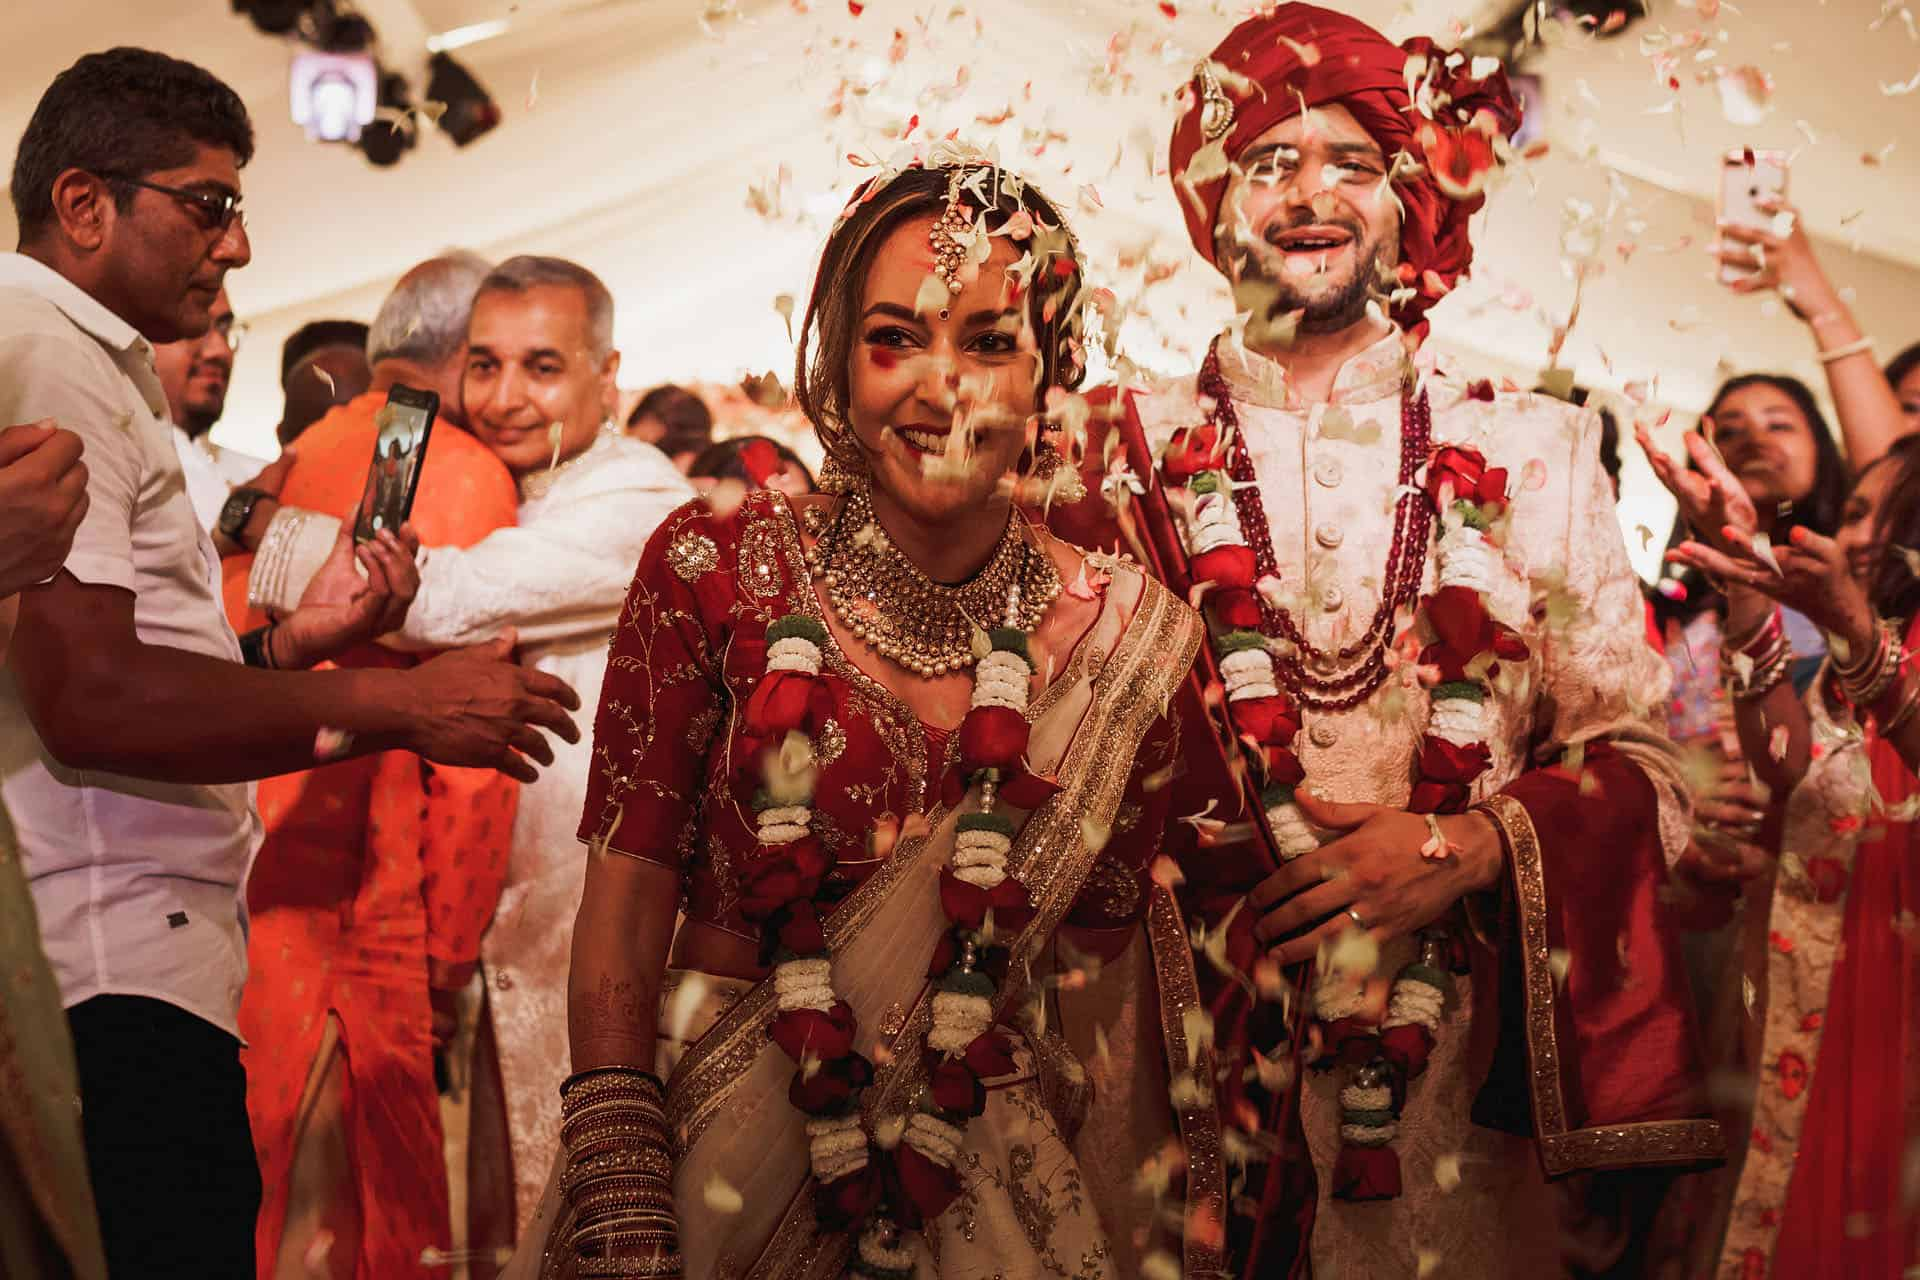 ditton manor hindu wedding